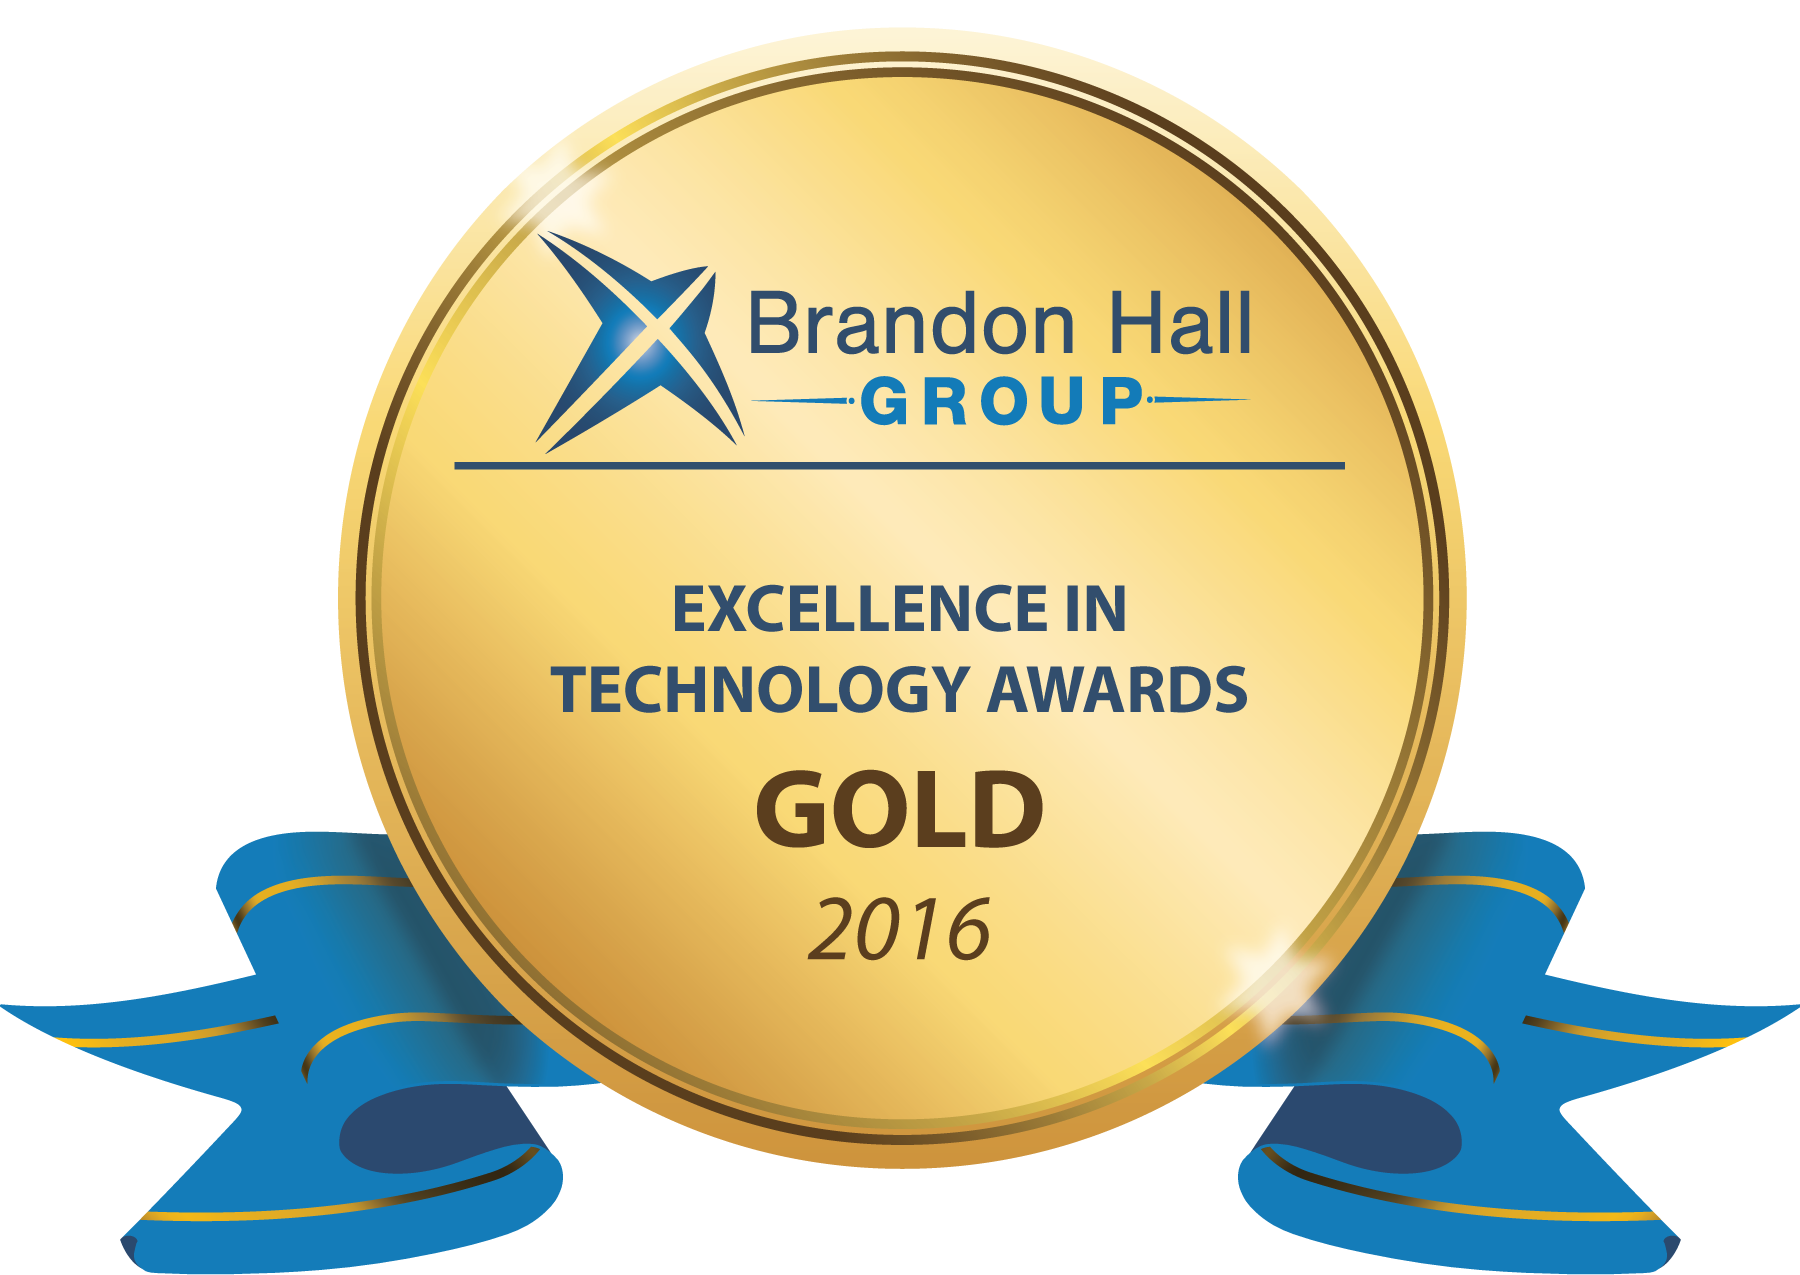 Gold Technology Awards